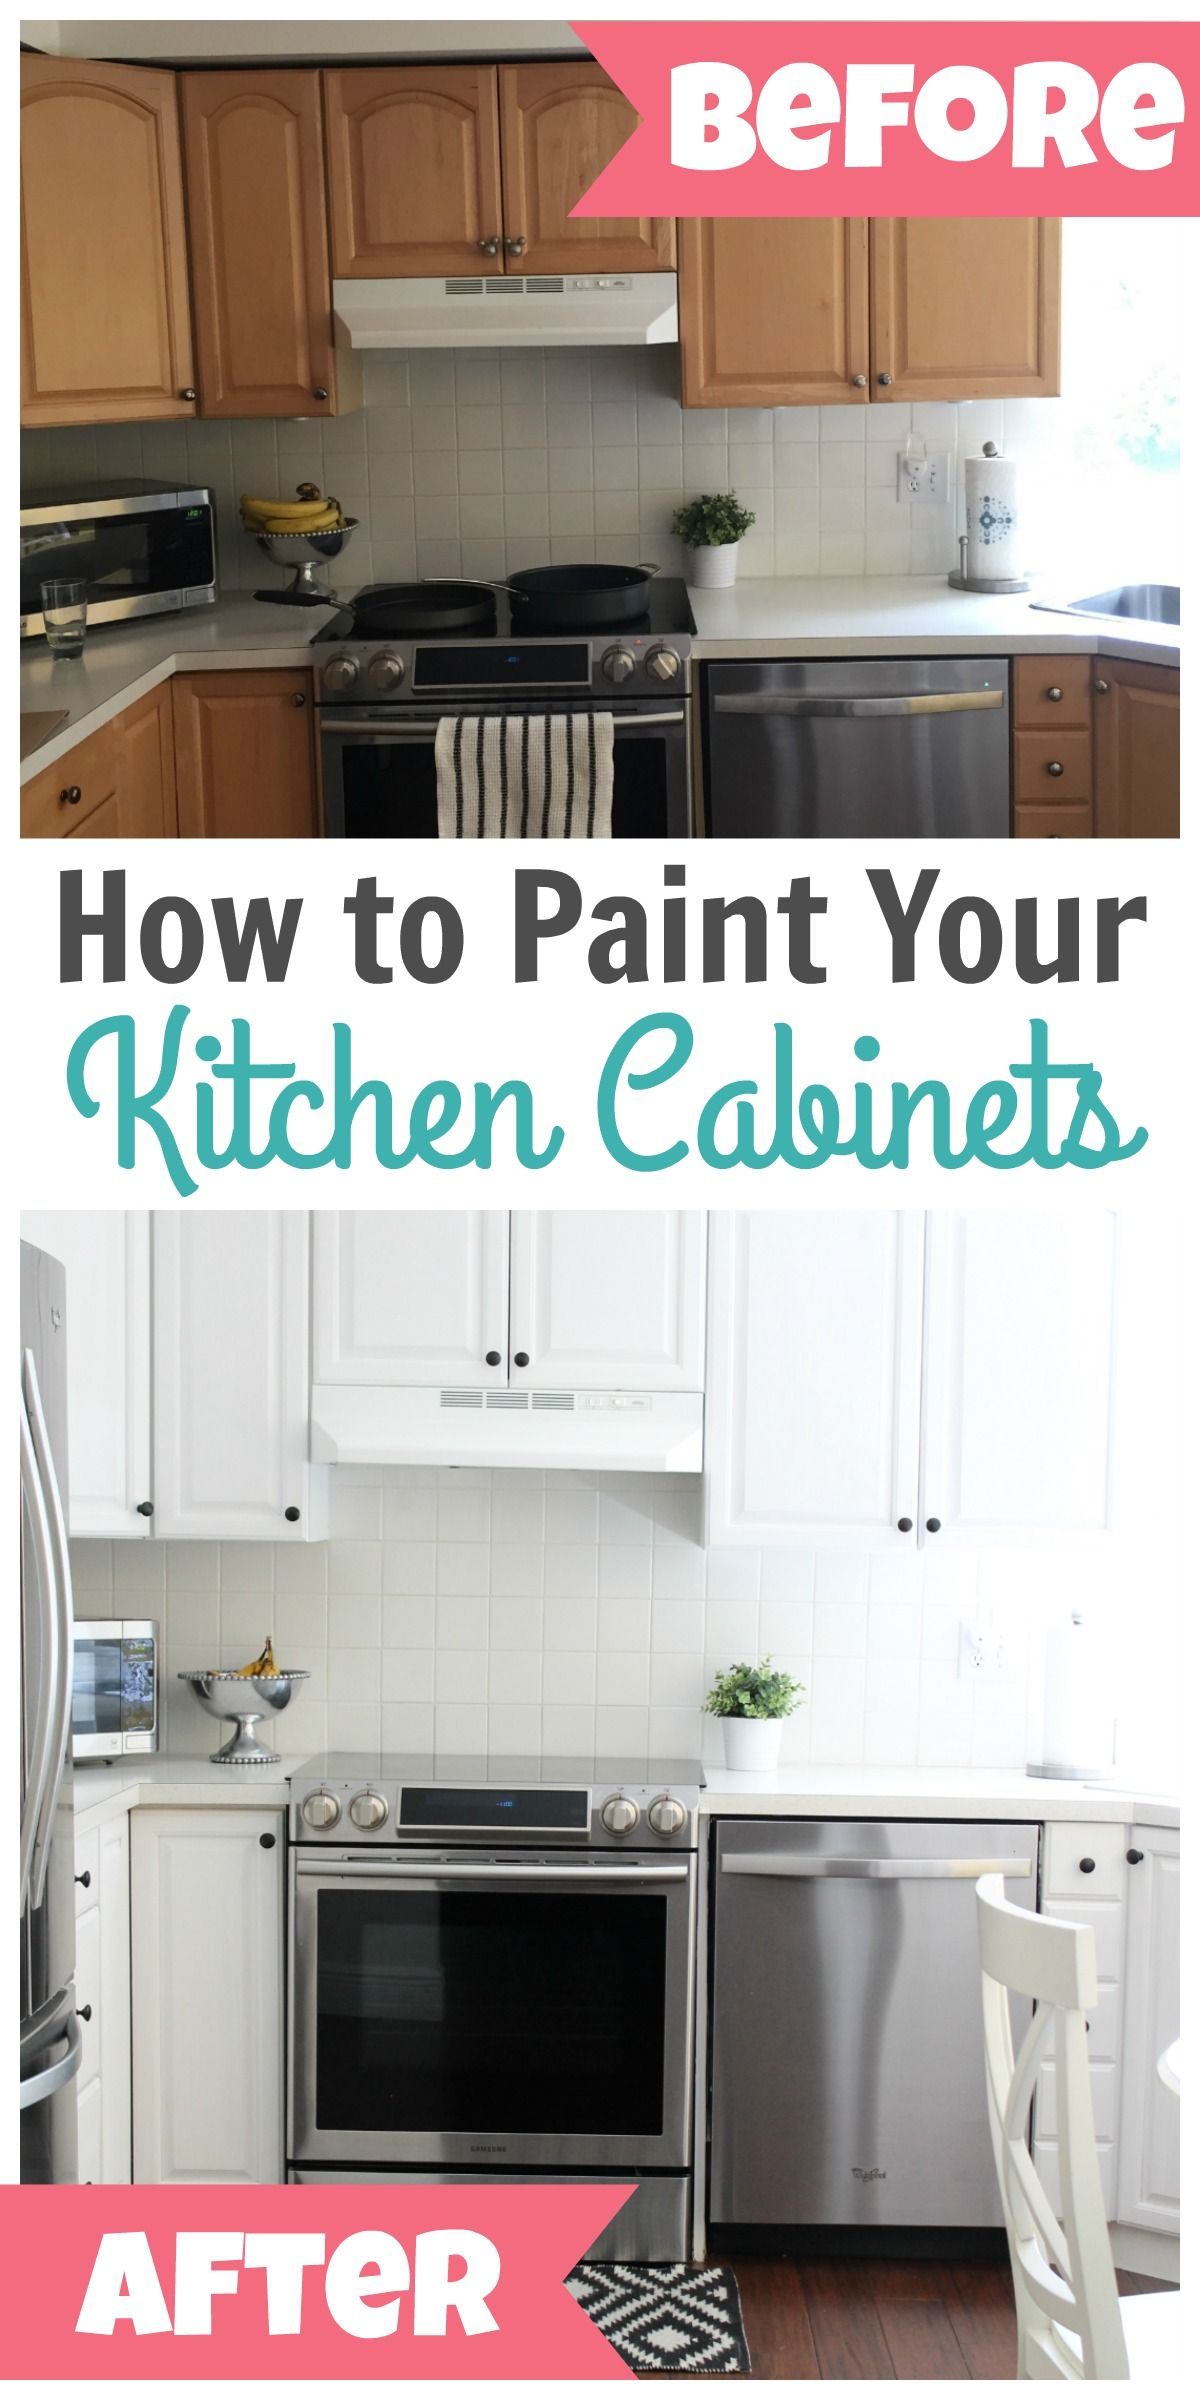 How To Paint Kitchen Cabinets Happy Home Fairy Cheap Kitchen Cabinets Laminate Kitchen Cabinets Clean Kitchen Cabinets